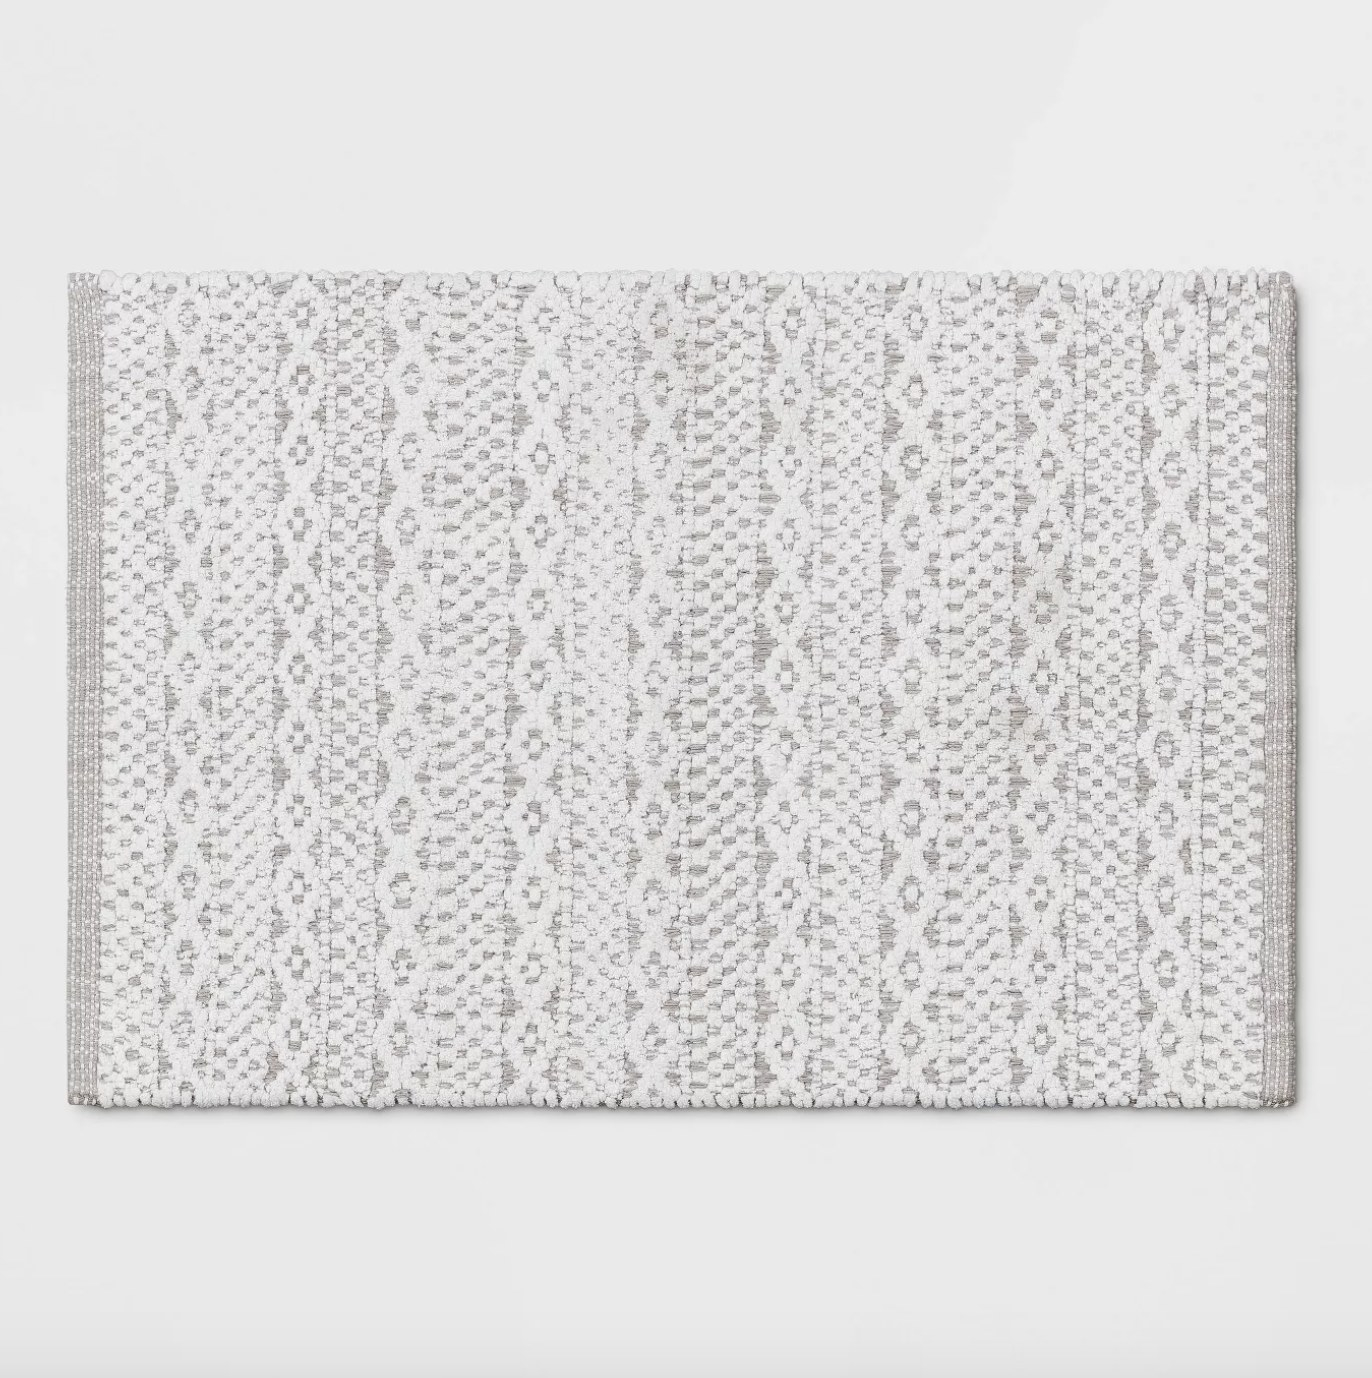 the rug in gray with a woven pattern in white